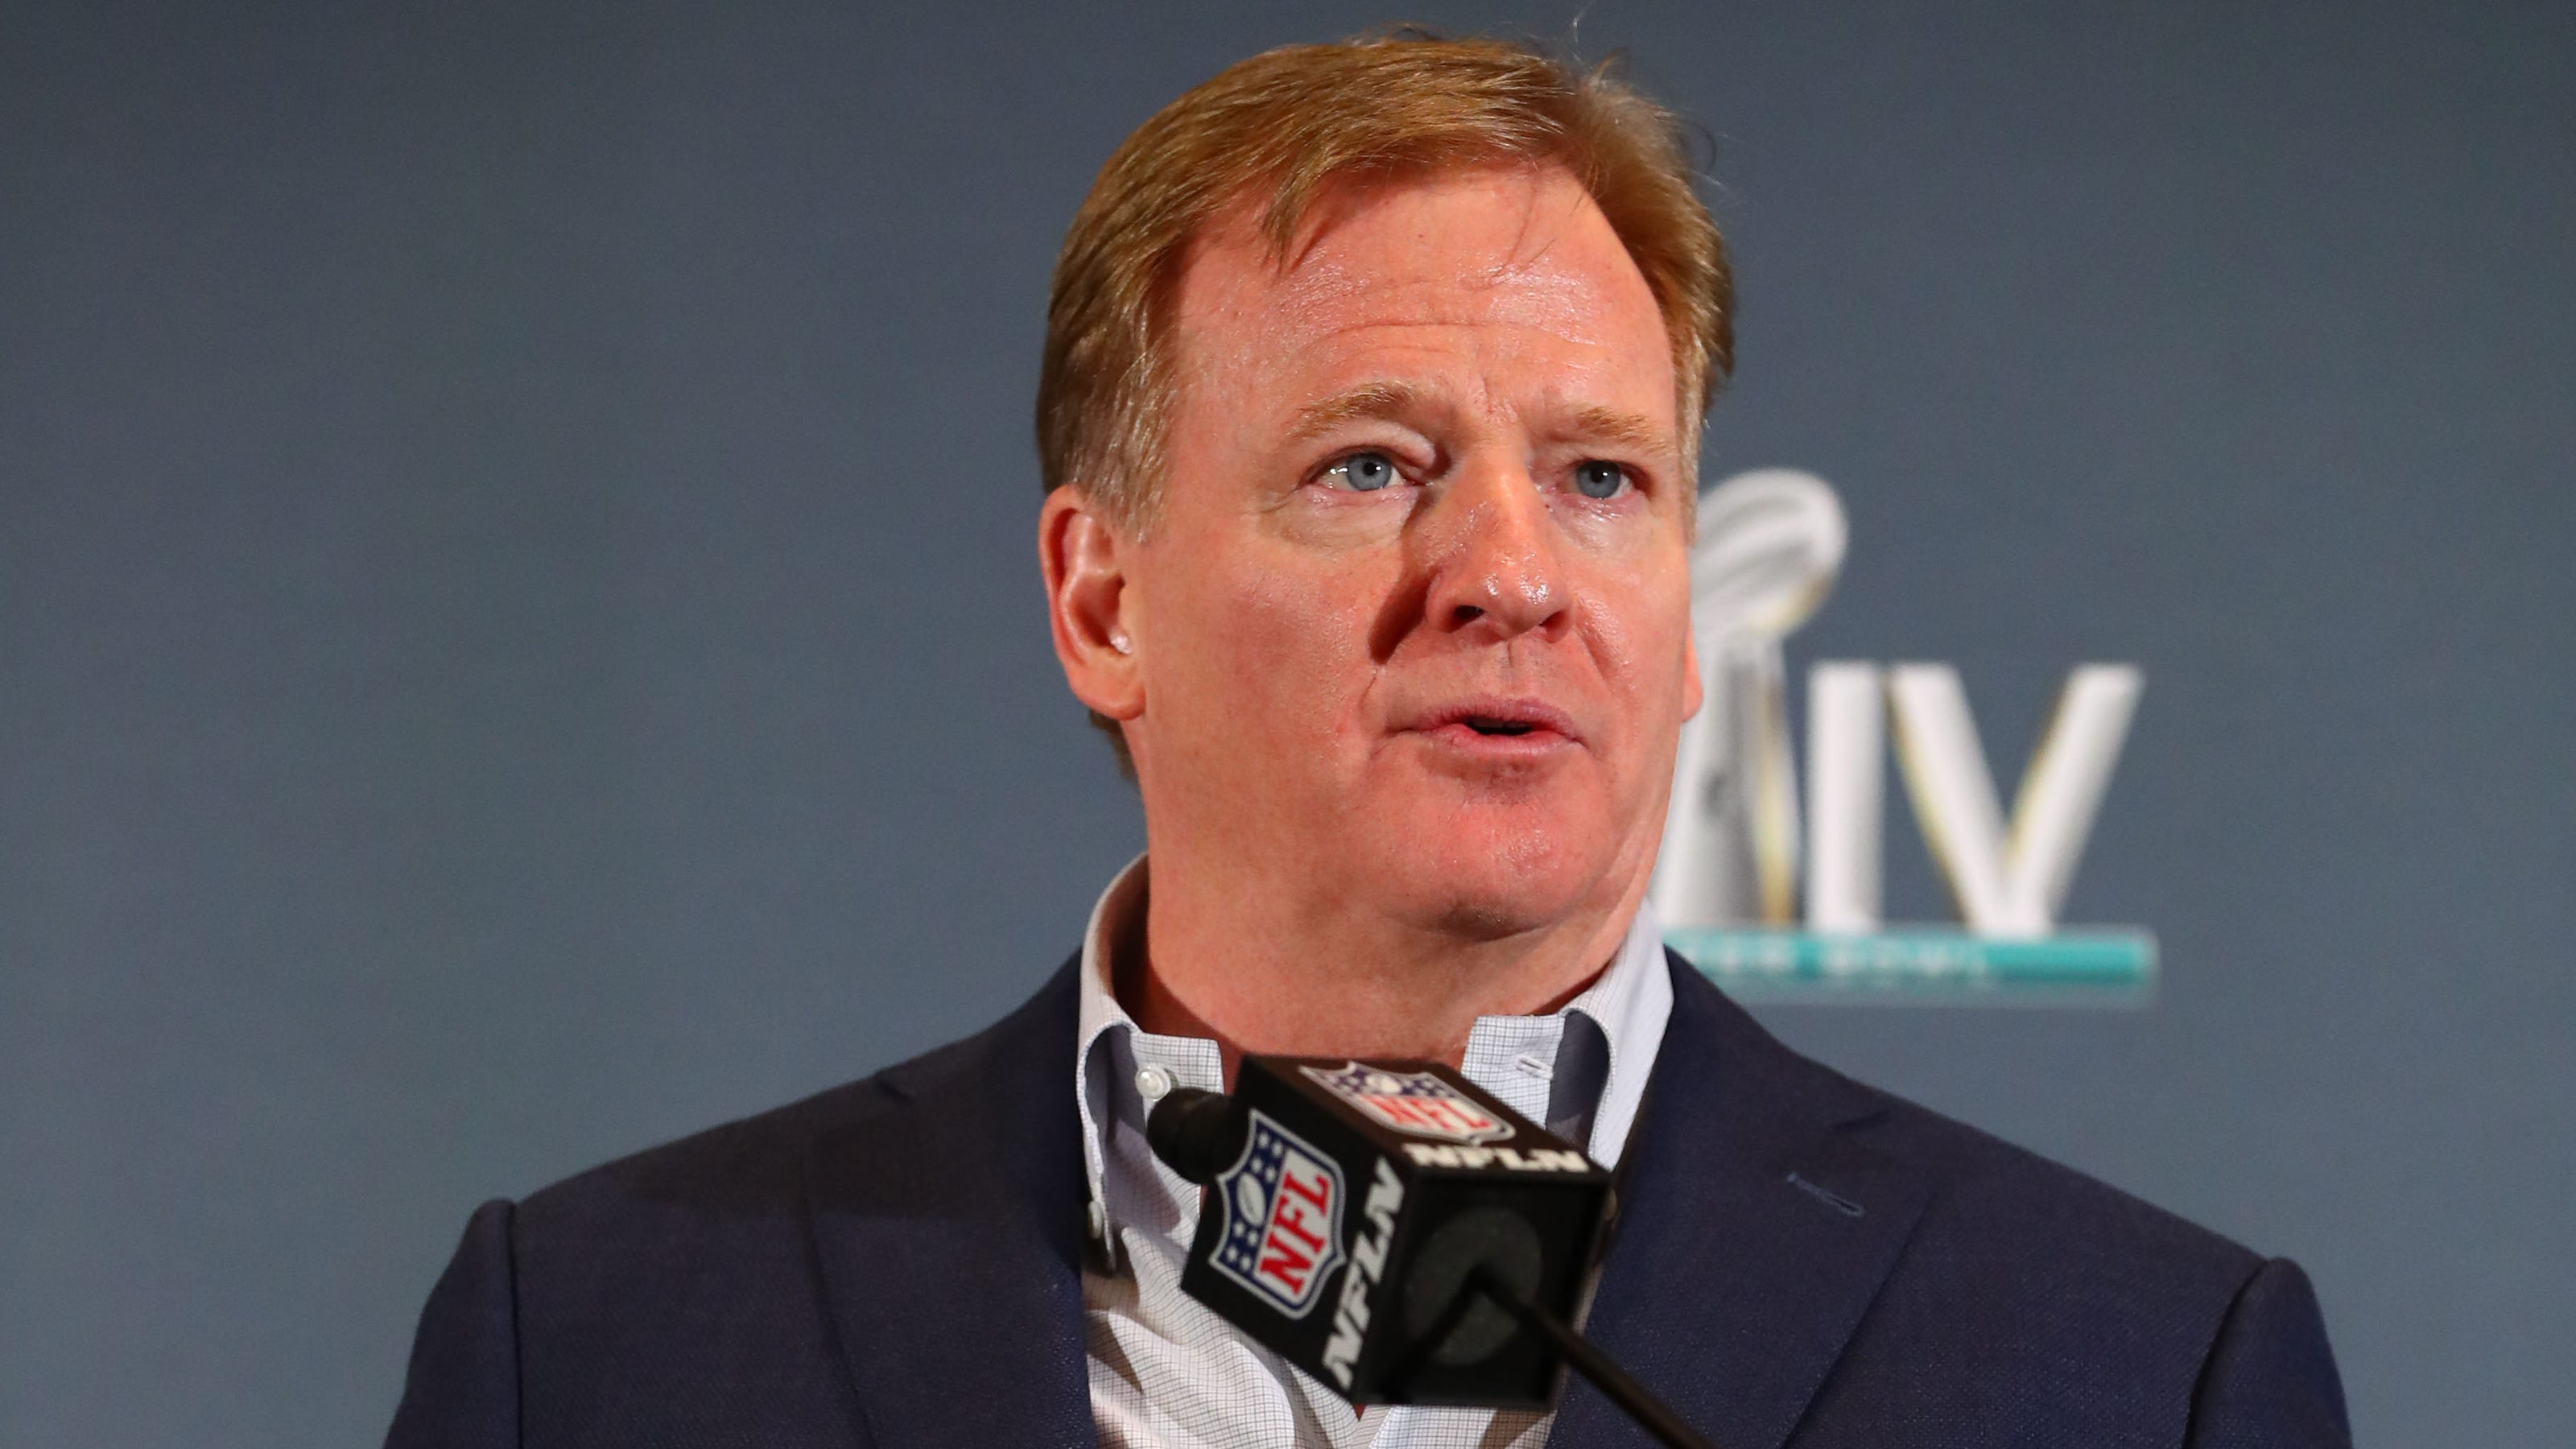 NFL Commissioner Roger Goodell Says 'I Wish We Had Listened Earlier' in Public Message to Colin Kaepernick